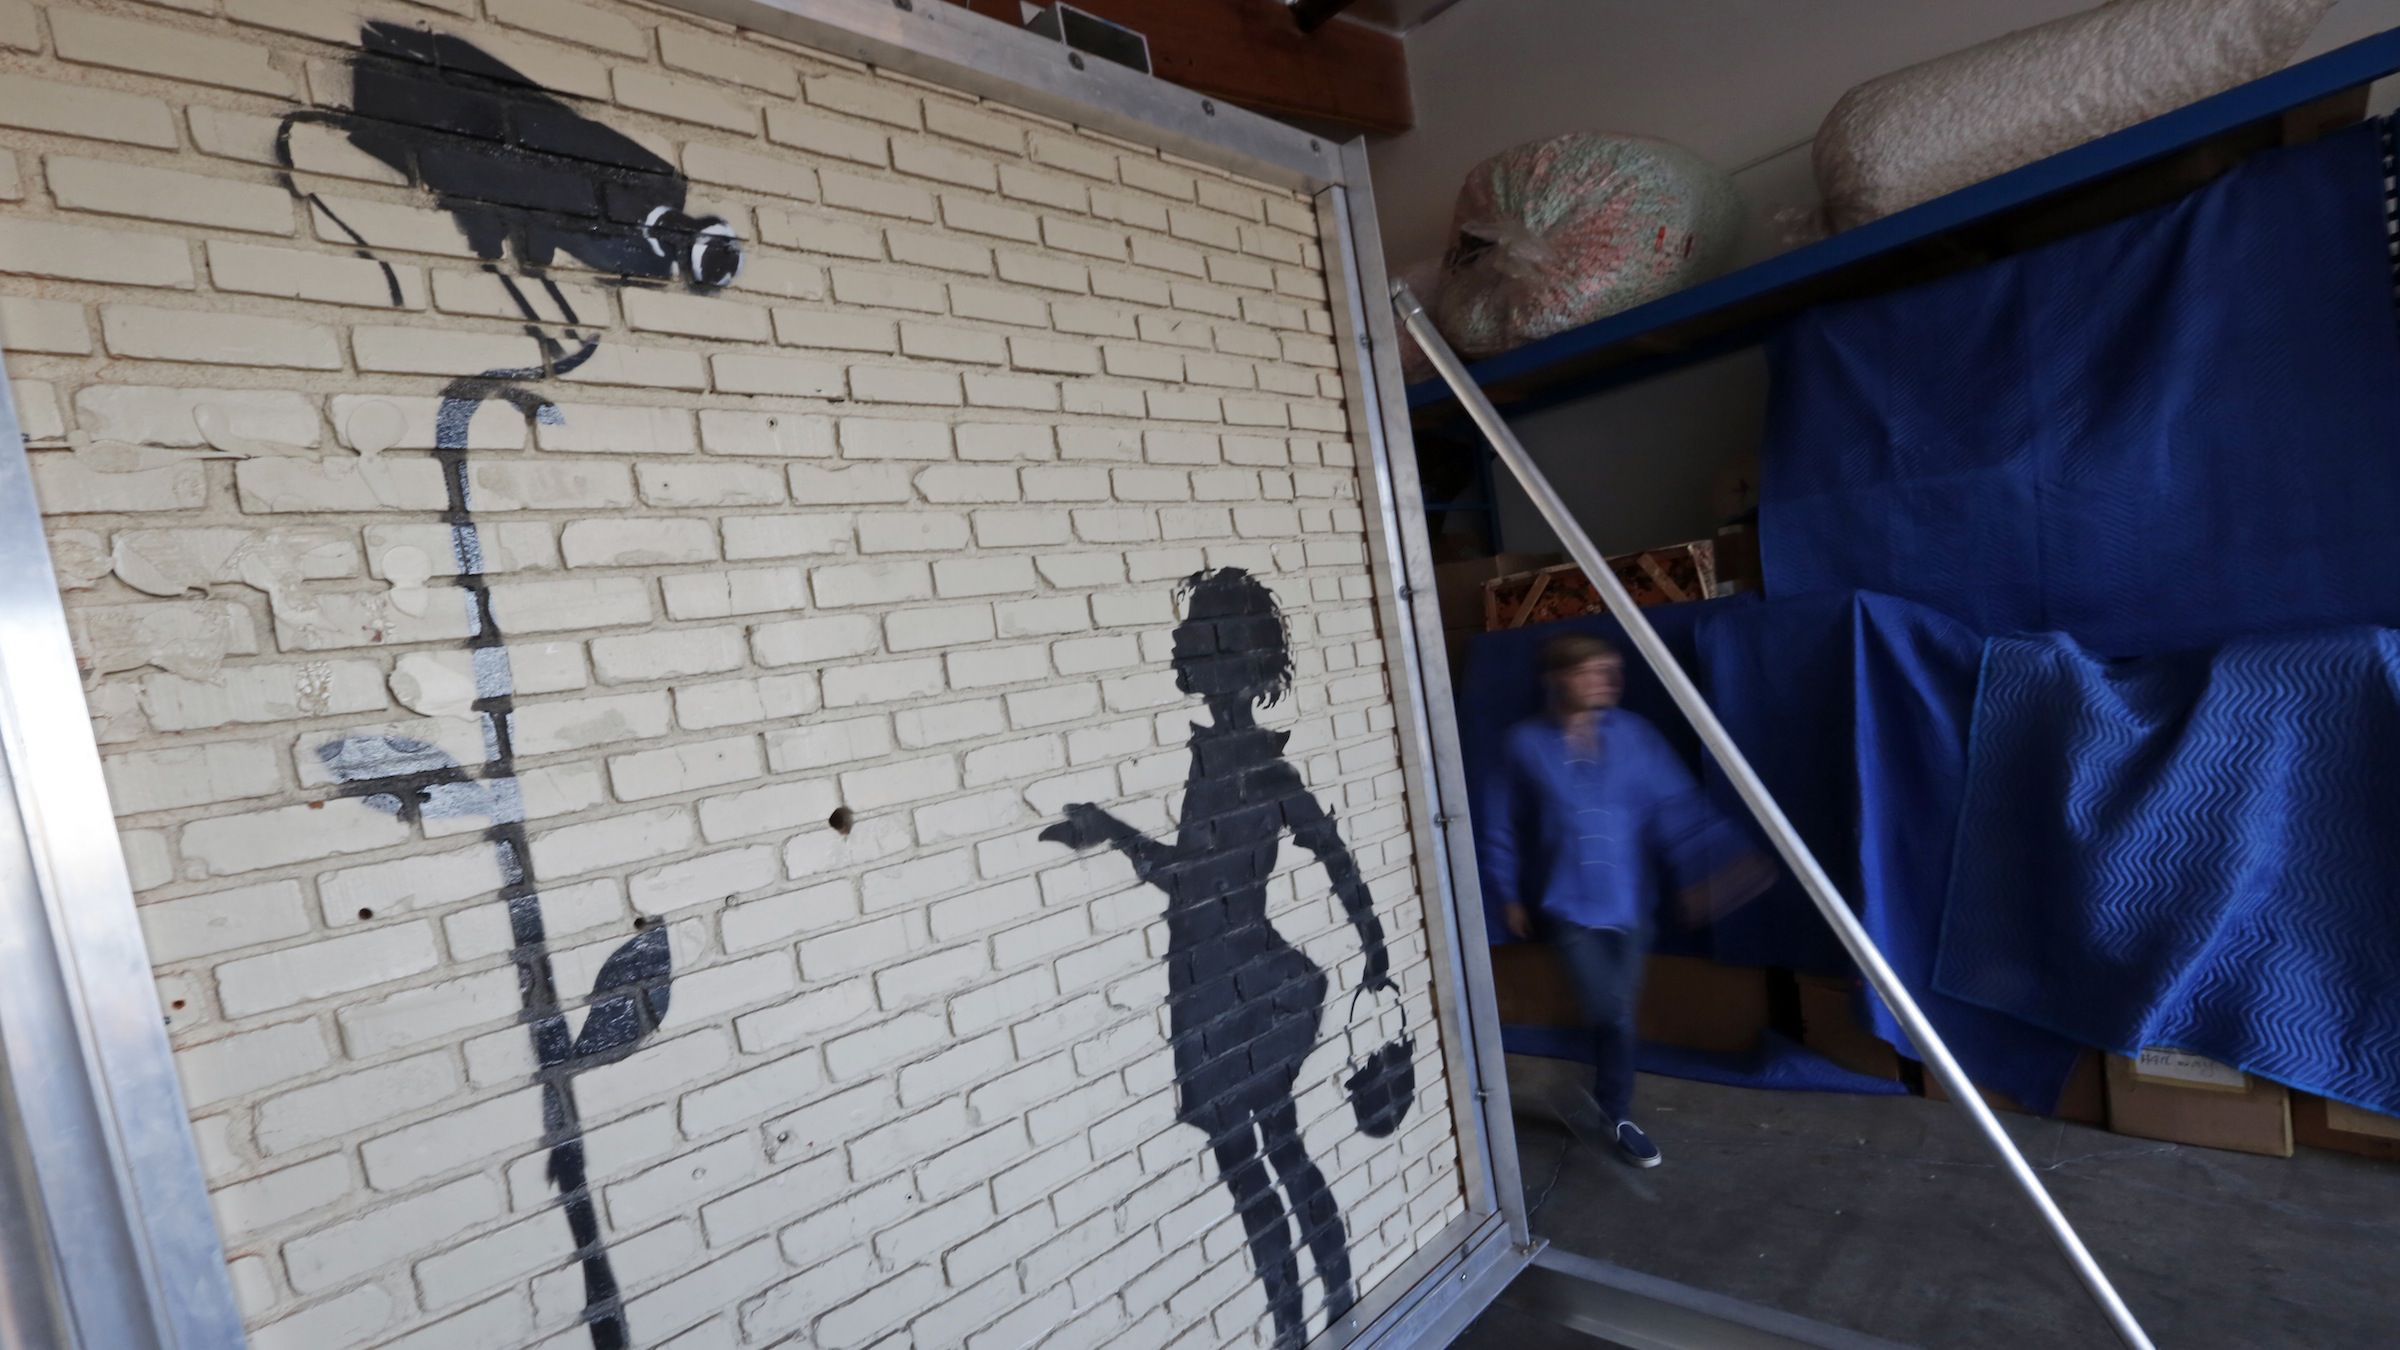 """Michael Doyle, street art director for Julien's Auctions, walks near """"Flower Girl,"""" a delicate stencil on a massive brick wall by popular street artist Banksy, that is displayed in a warehouse in the greater Los Angeles area Wednesday, Dec. 4, 2013. The artist painted it on the side of a Los Angeles gas station in 2008. The building's owner carefully removed the wall section, which is 9 feet high, 8 feet wide and weighs nearly 5,000 pounds, framed it in sturdy aluminum and brought it to Julien's Auctions.  Doyle says the piece could fetch more than $300,000 at auction on Thursday, because, """"Celebrities are Banksy-crazy."""" (AP Photo/Reed Saxon)"""